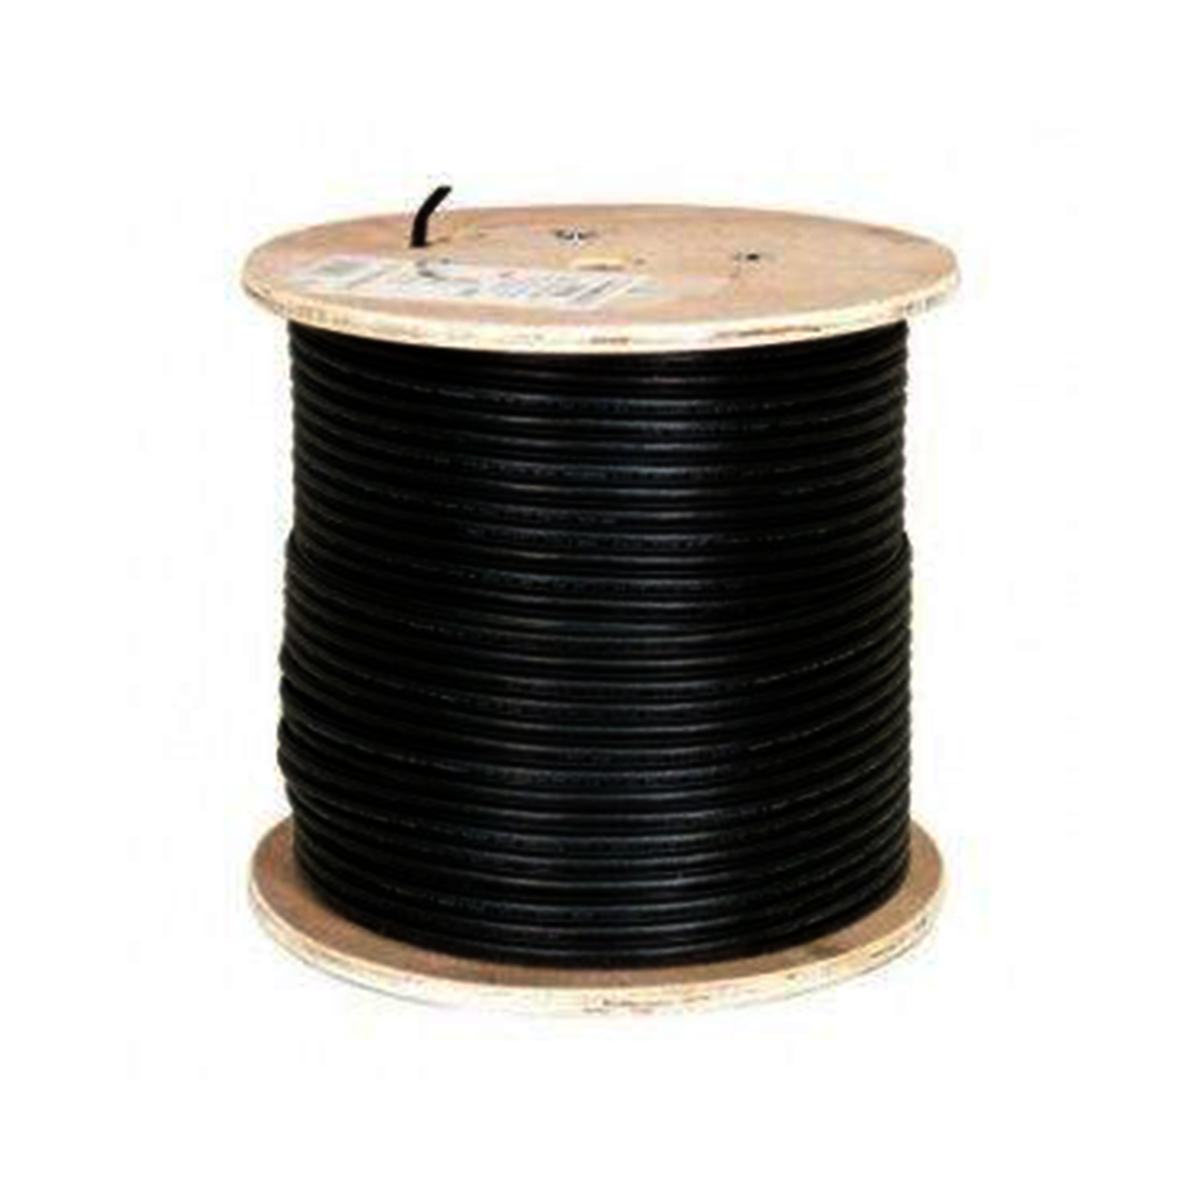 Cable CAT 6 Outdoor Wireplus